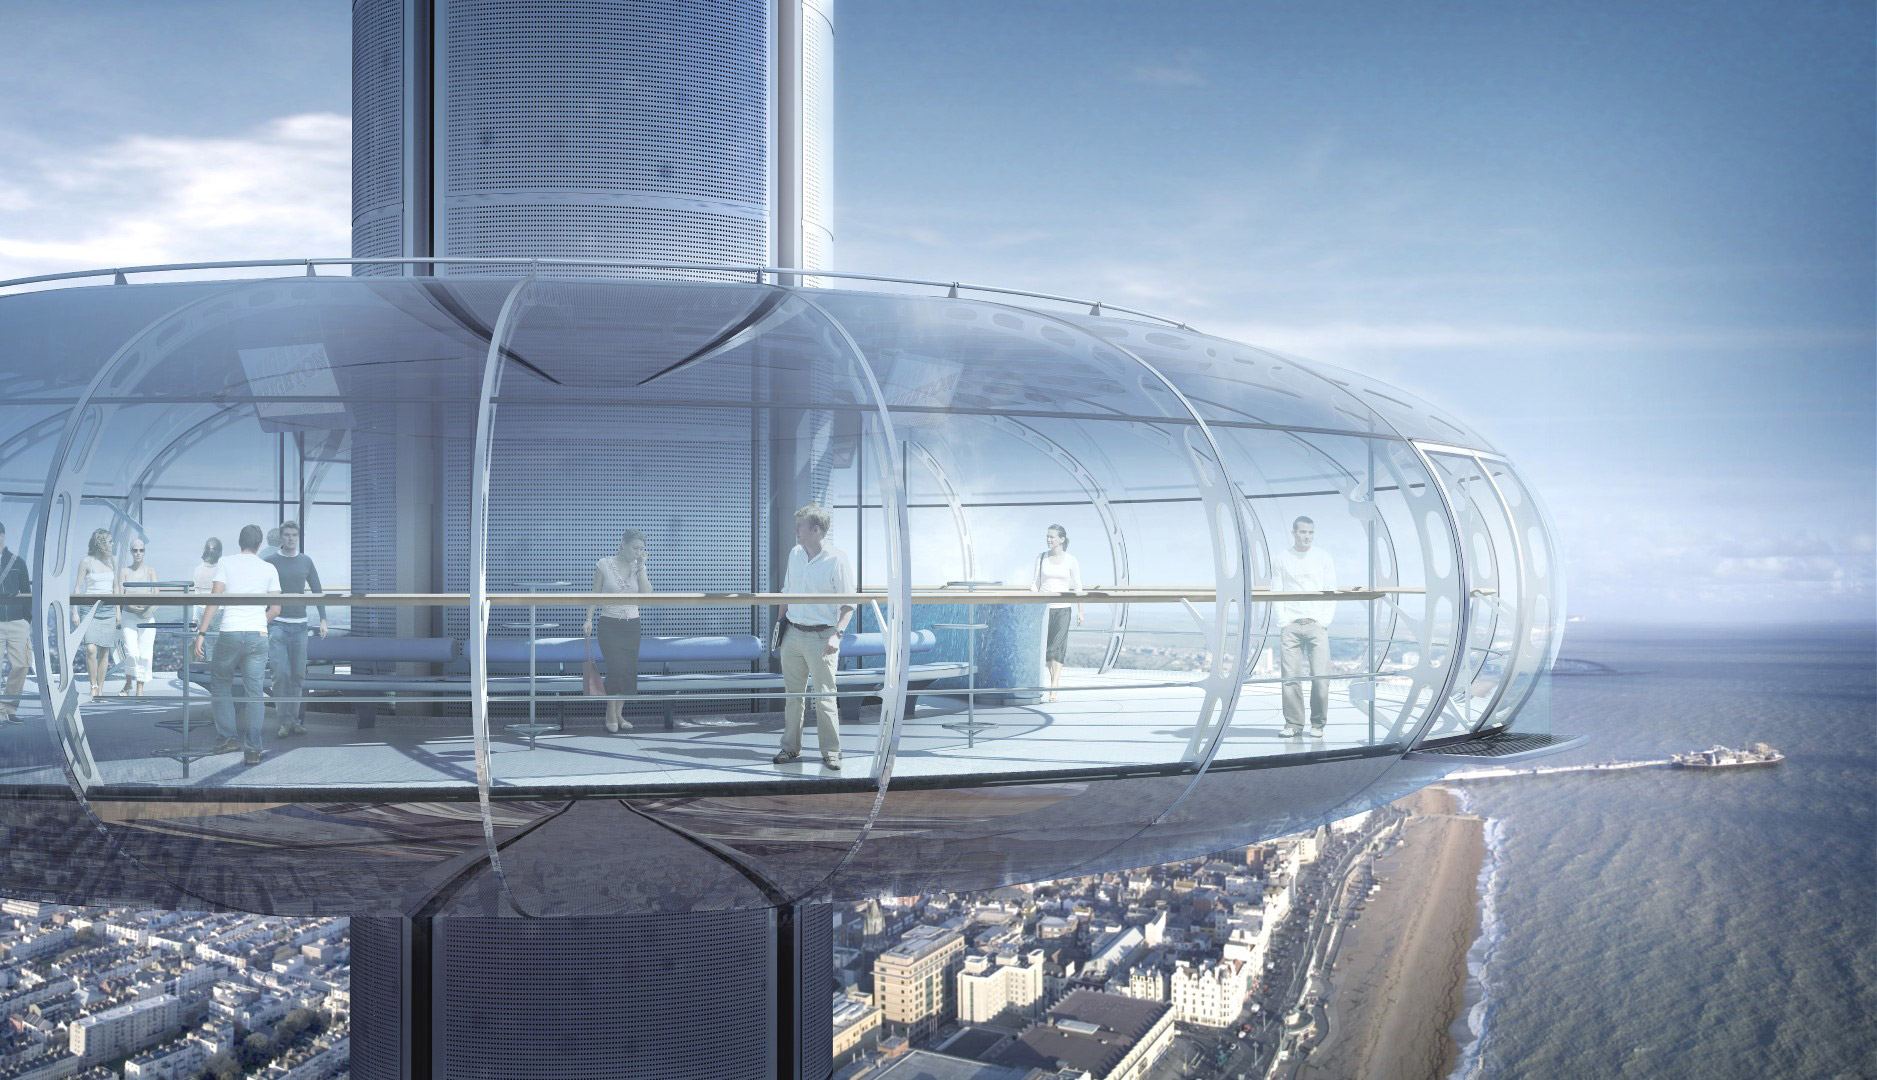 The British Airways i360 Prepares For Take-off 4